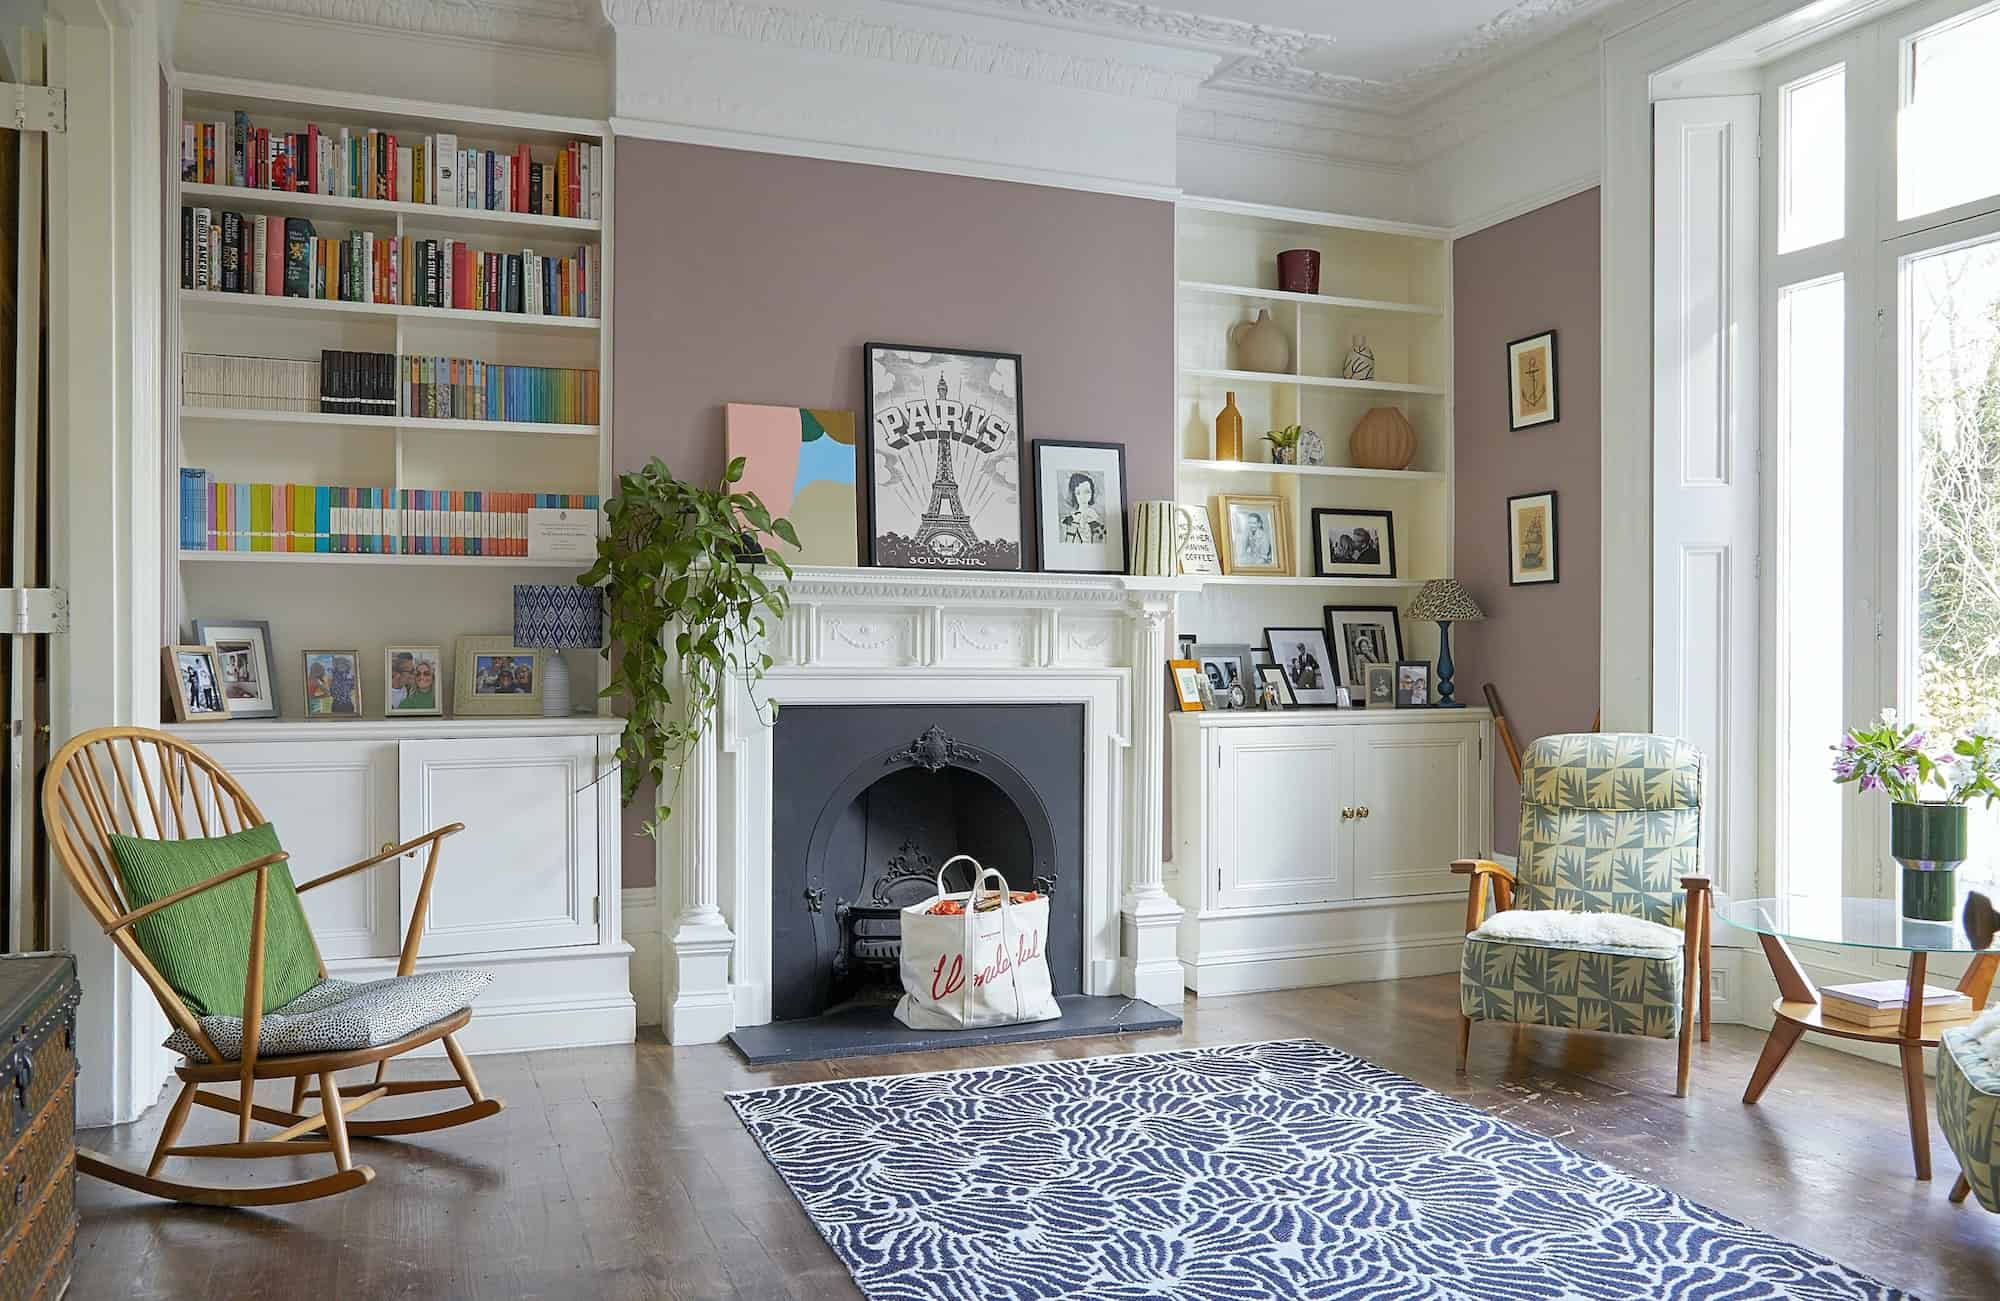 The Oaks SE23 - A large, bright, colourful family home with garden and off street parking. Suitable for paint and decorate shoots - The Location Guys